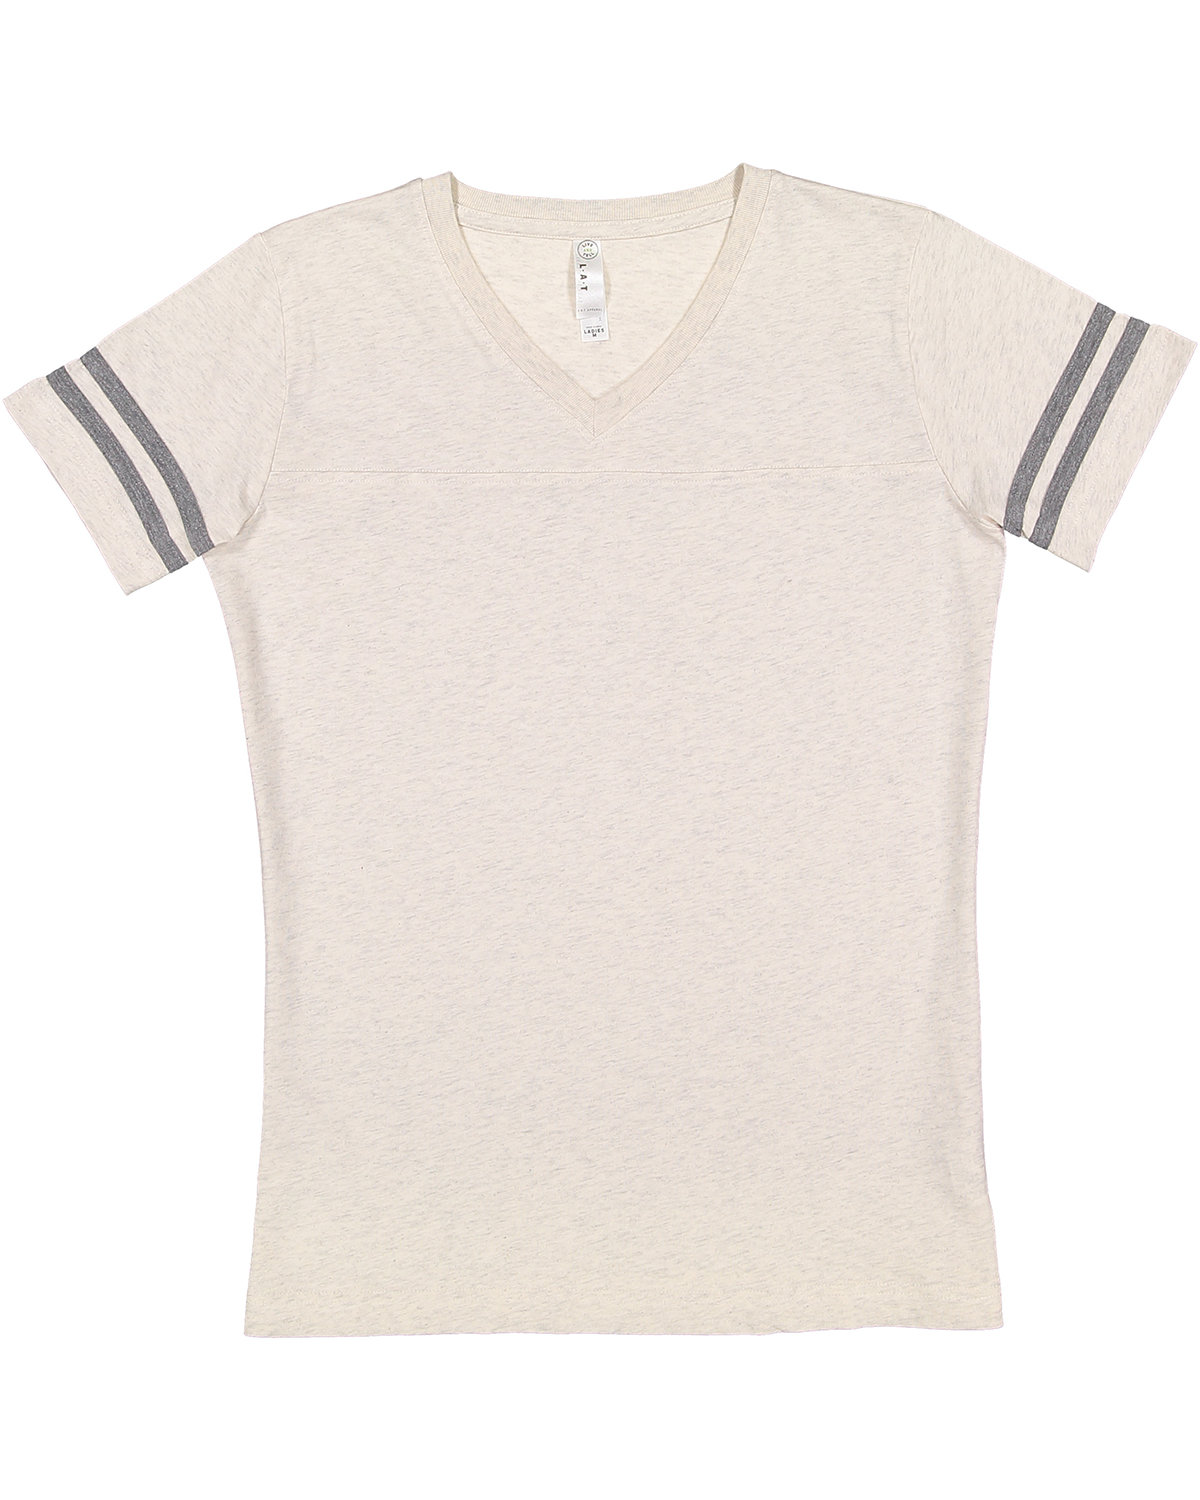 LAT Ladies' Football T-Shirt NAT HTH/ GRAN HT